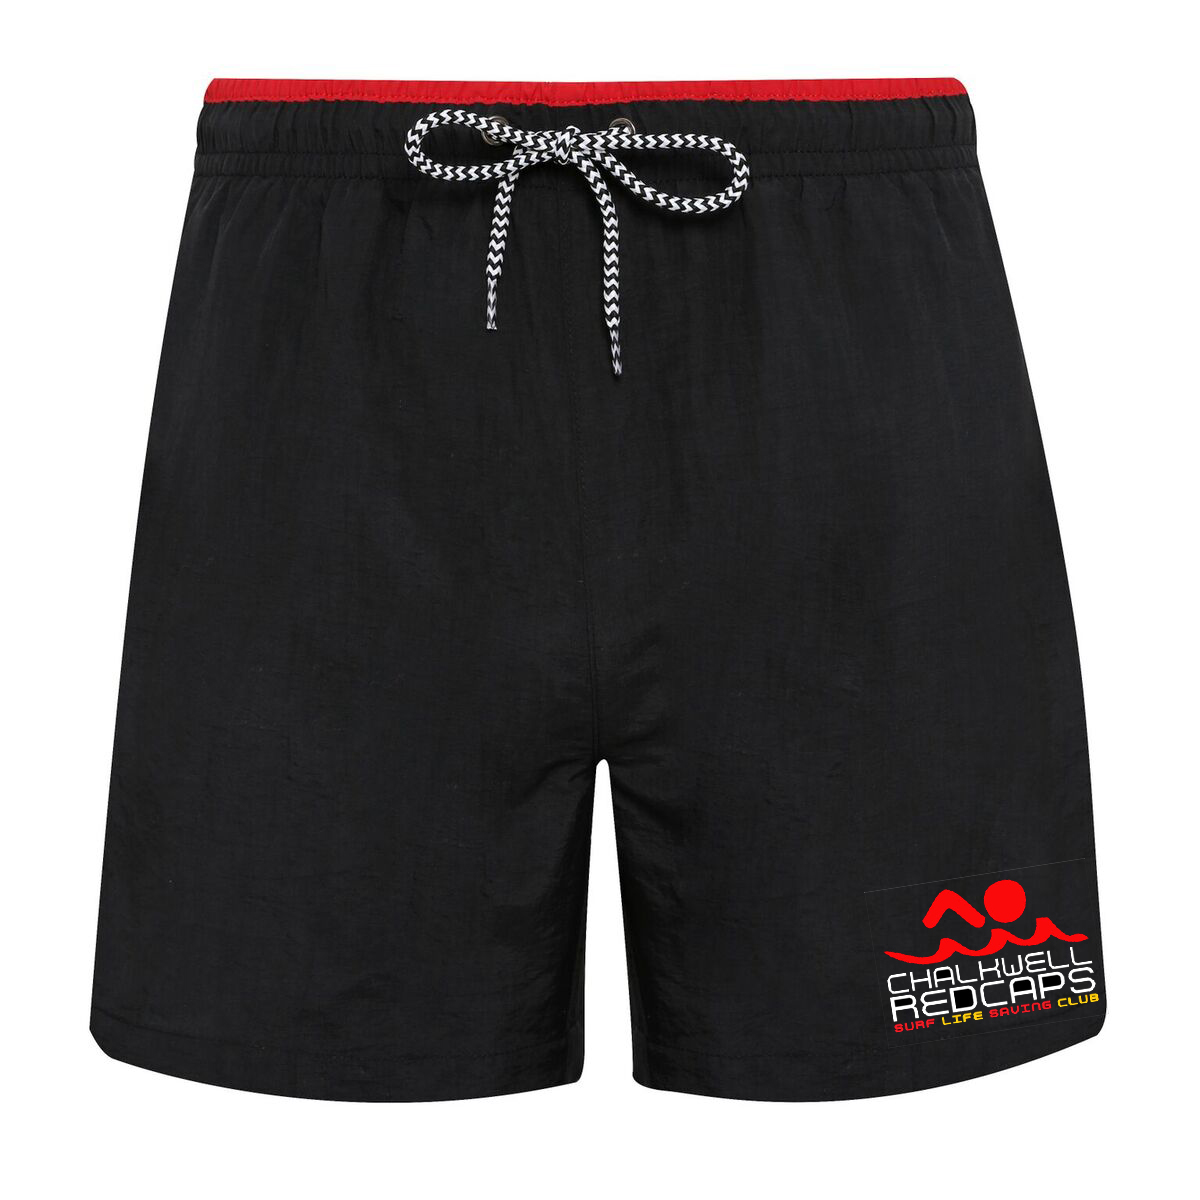 Redcaps Beach Shorts